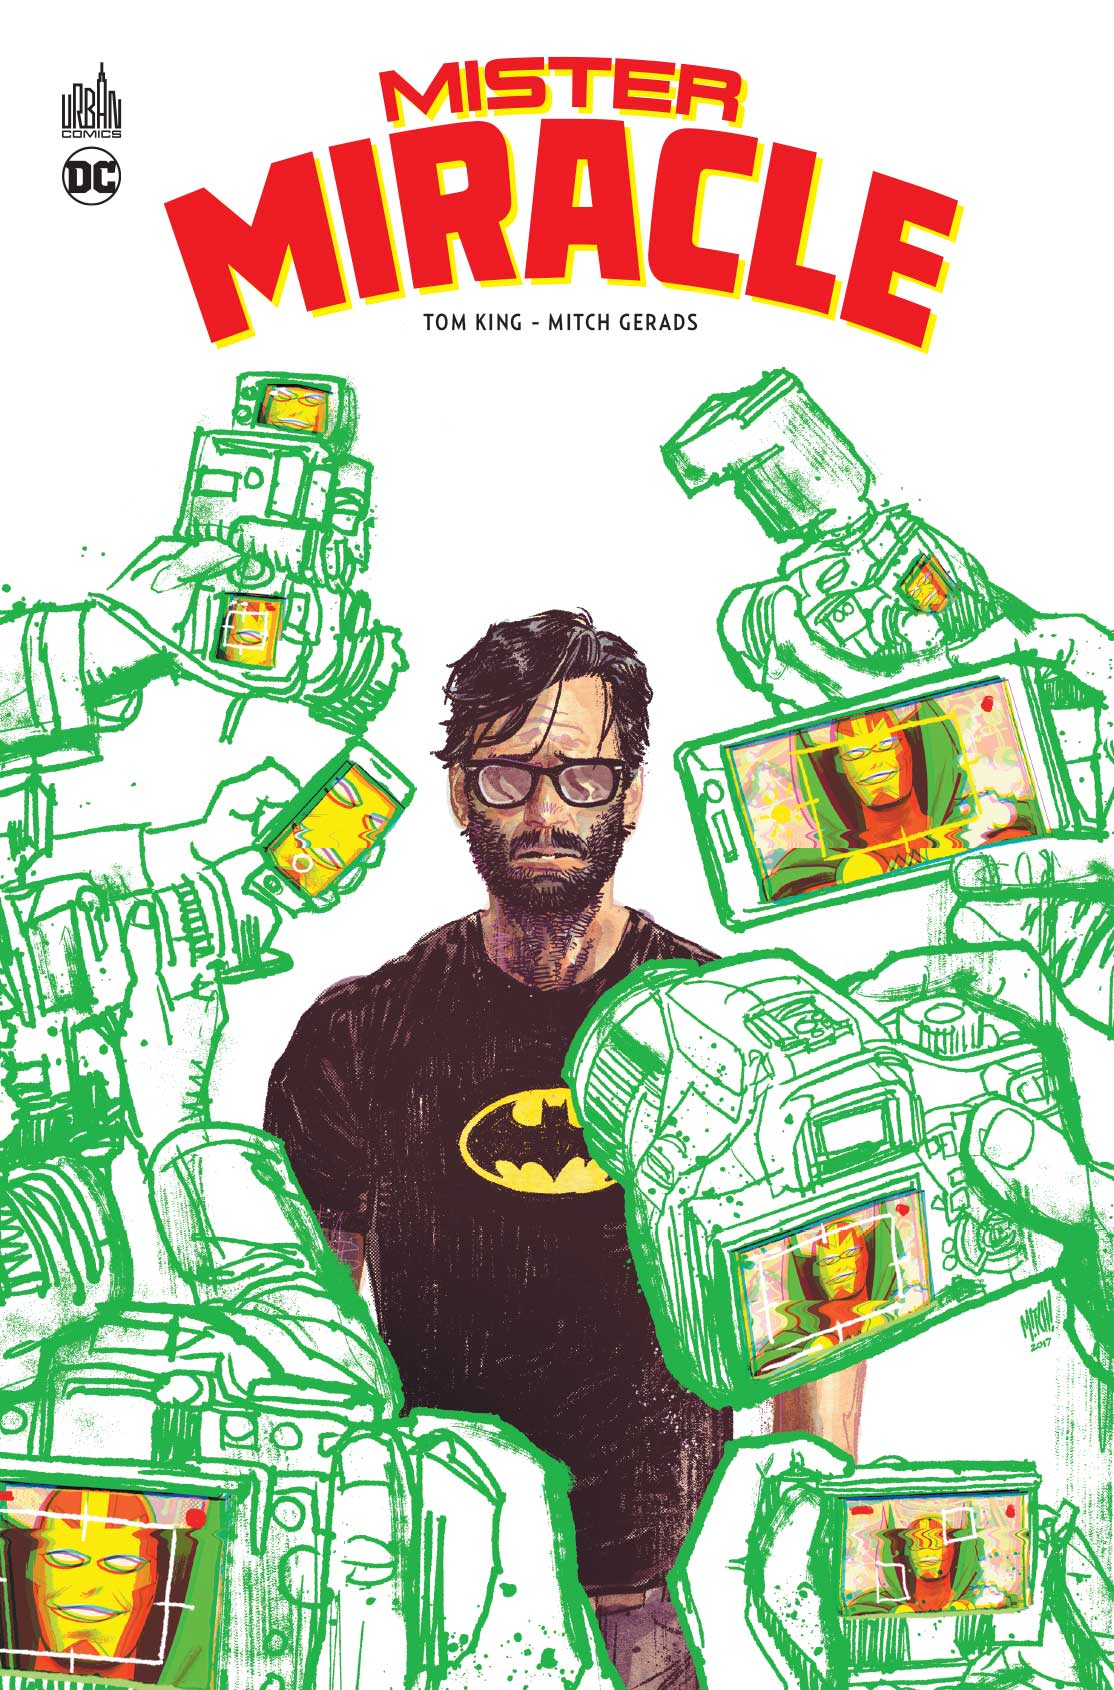 Mister Miracle 1 - Mr miracle